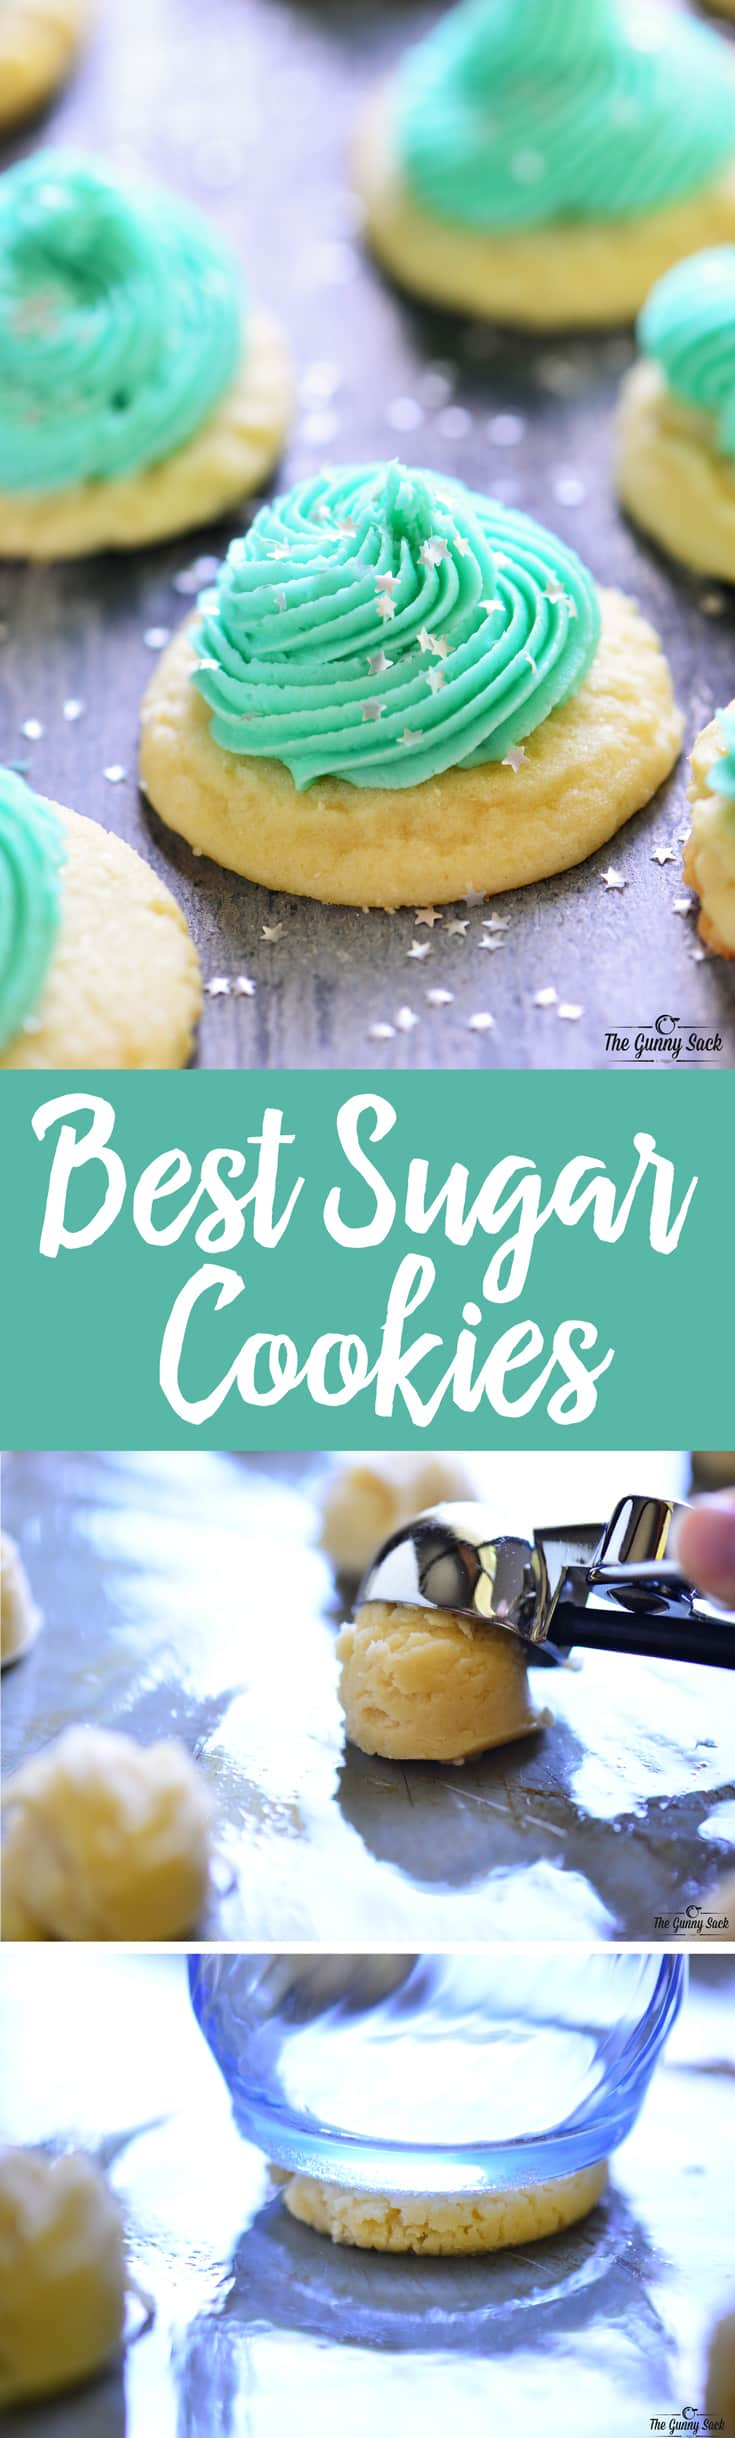 Best Sugar Cookies Recipe | thegunnysack.com